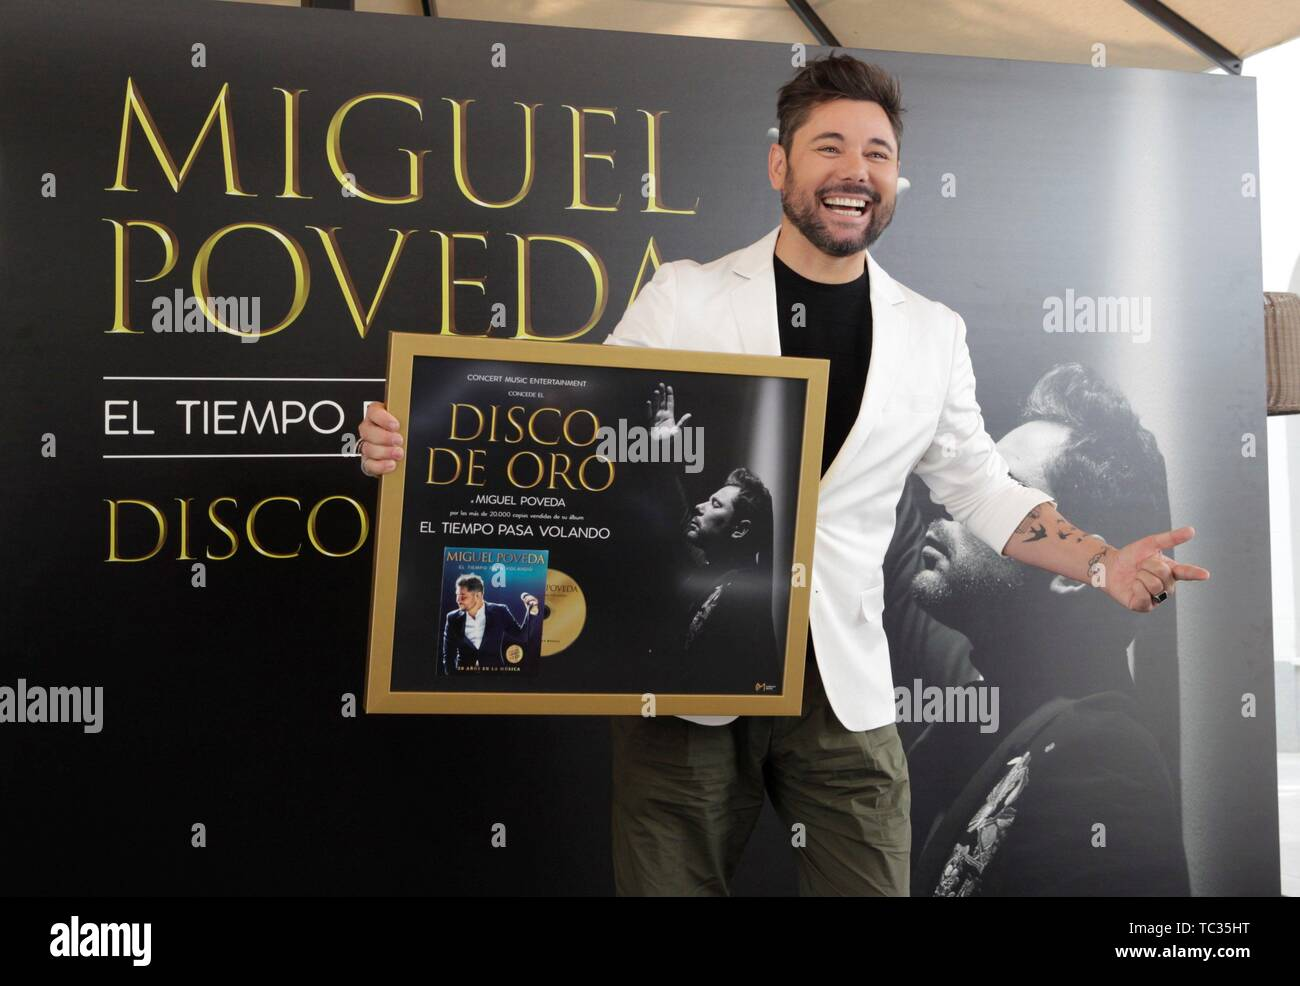 Madrid, Spain  05th June, 2019  Spanish singer Miguel Poveda poses